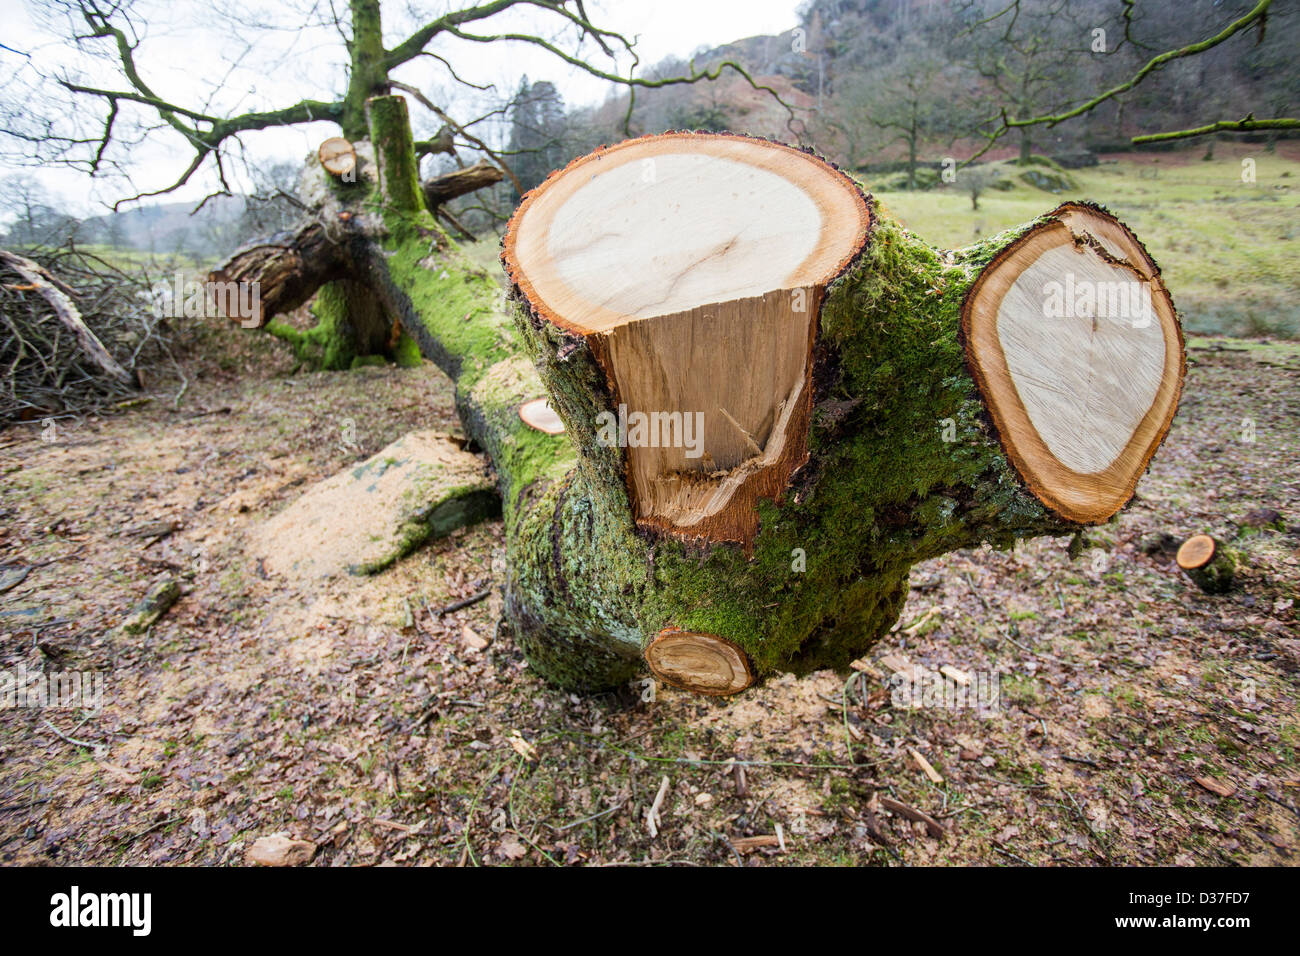 An old Oak tree blown over by gale force winds in Rydal, Lake District, UK. Stock Photo